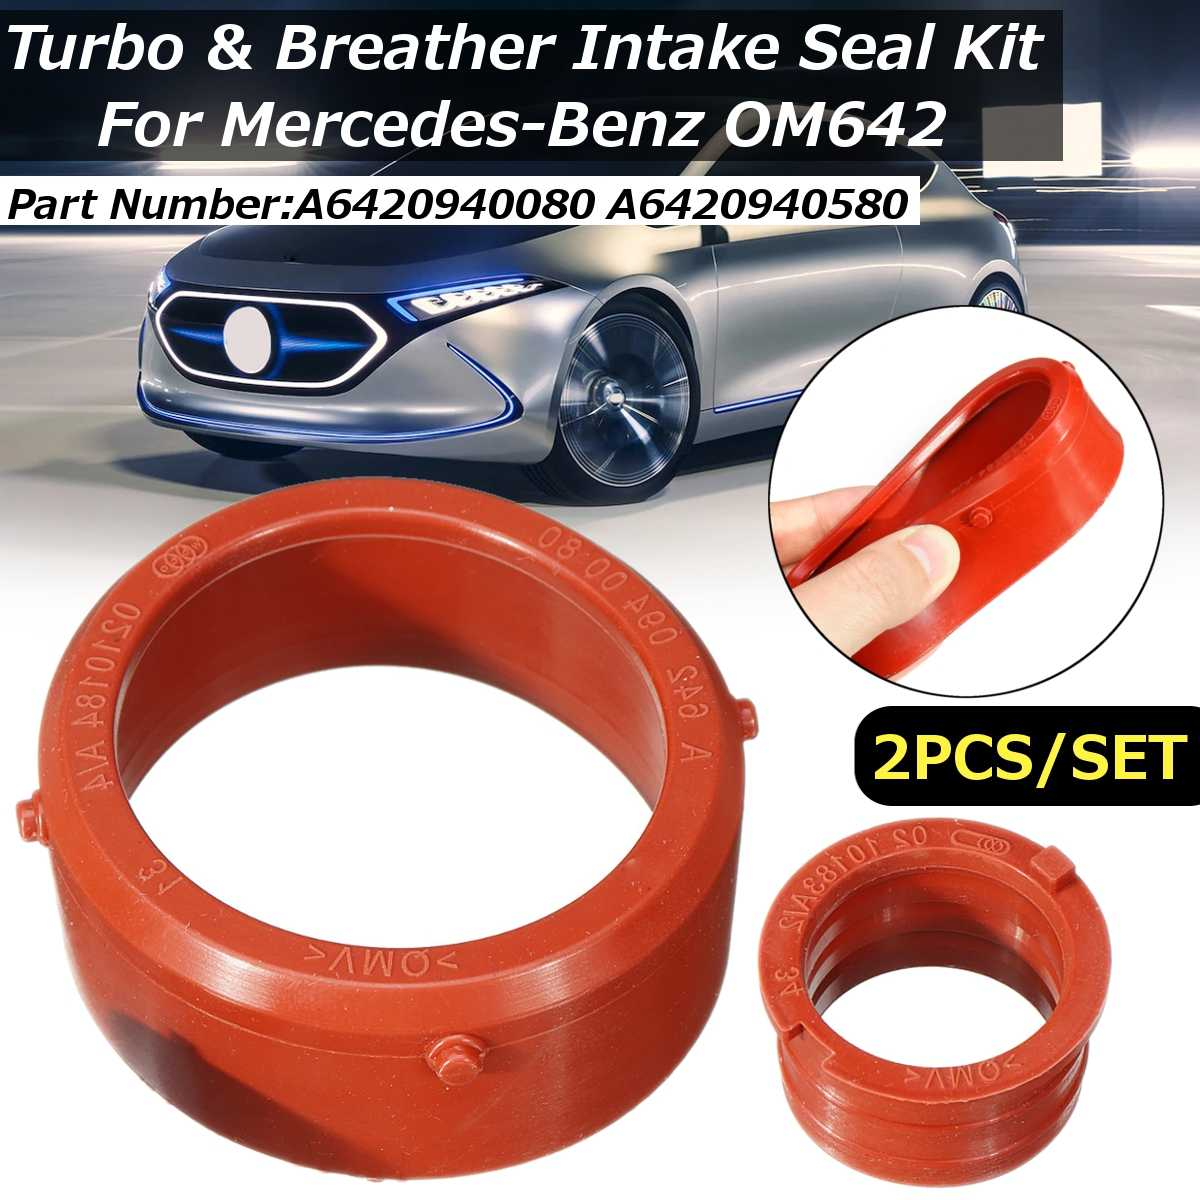 2pcs  Car Engine A6420940080 Turbo Intake Seal & Engine Breather Seal Kit For Mercedes-Benz OM642 Engines Engine Accessories